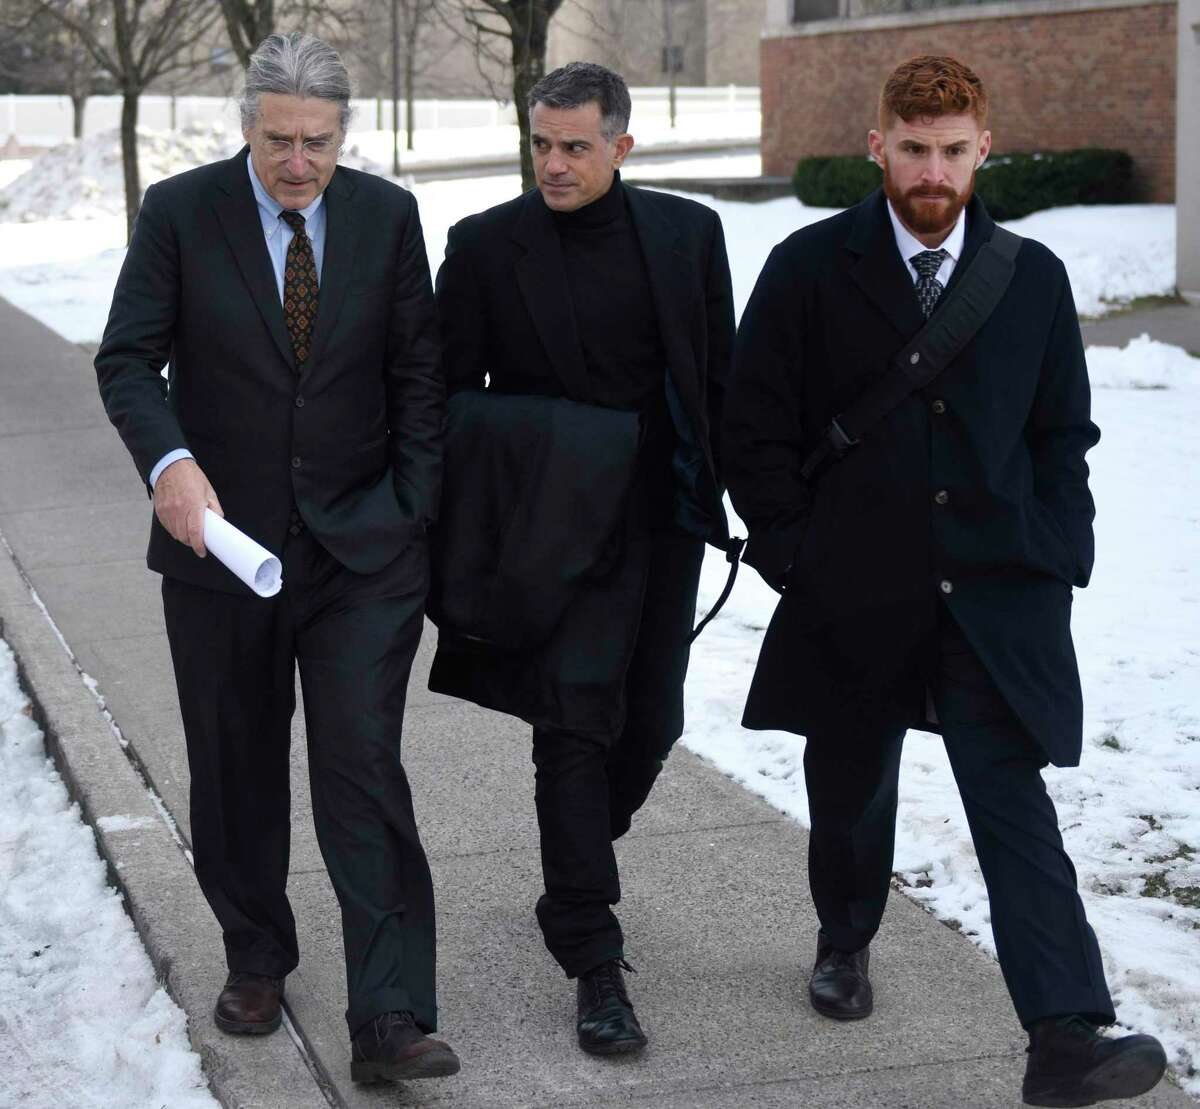 Fotis Dulos, center, leaves after his murder case hearing with attorneys Norm Pattis, left and Chris La Tronica at Connecticut Superior Court in Stamford, Conn. Thursday, Jan. 23, 2020.